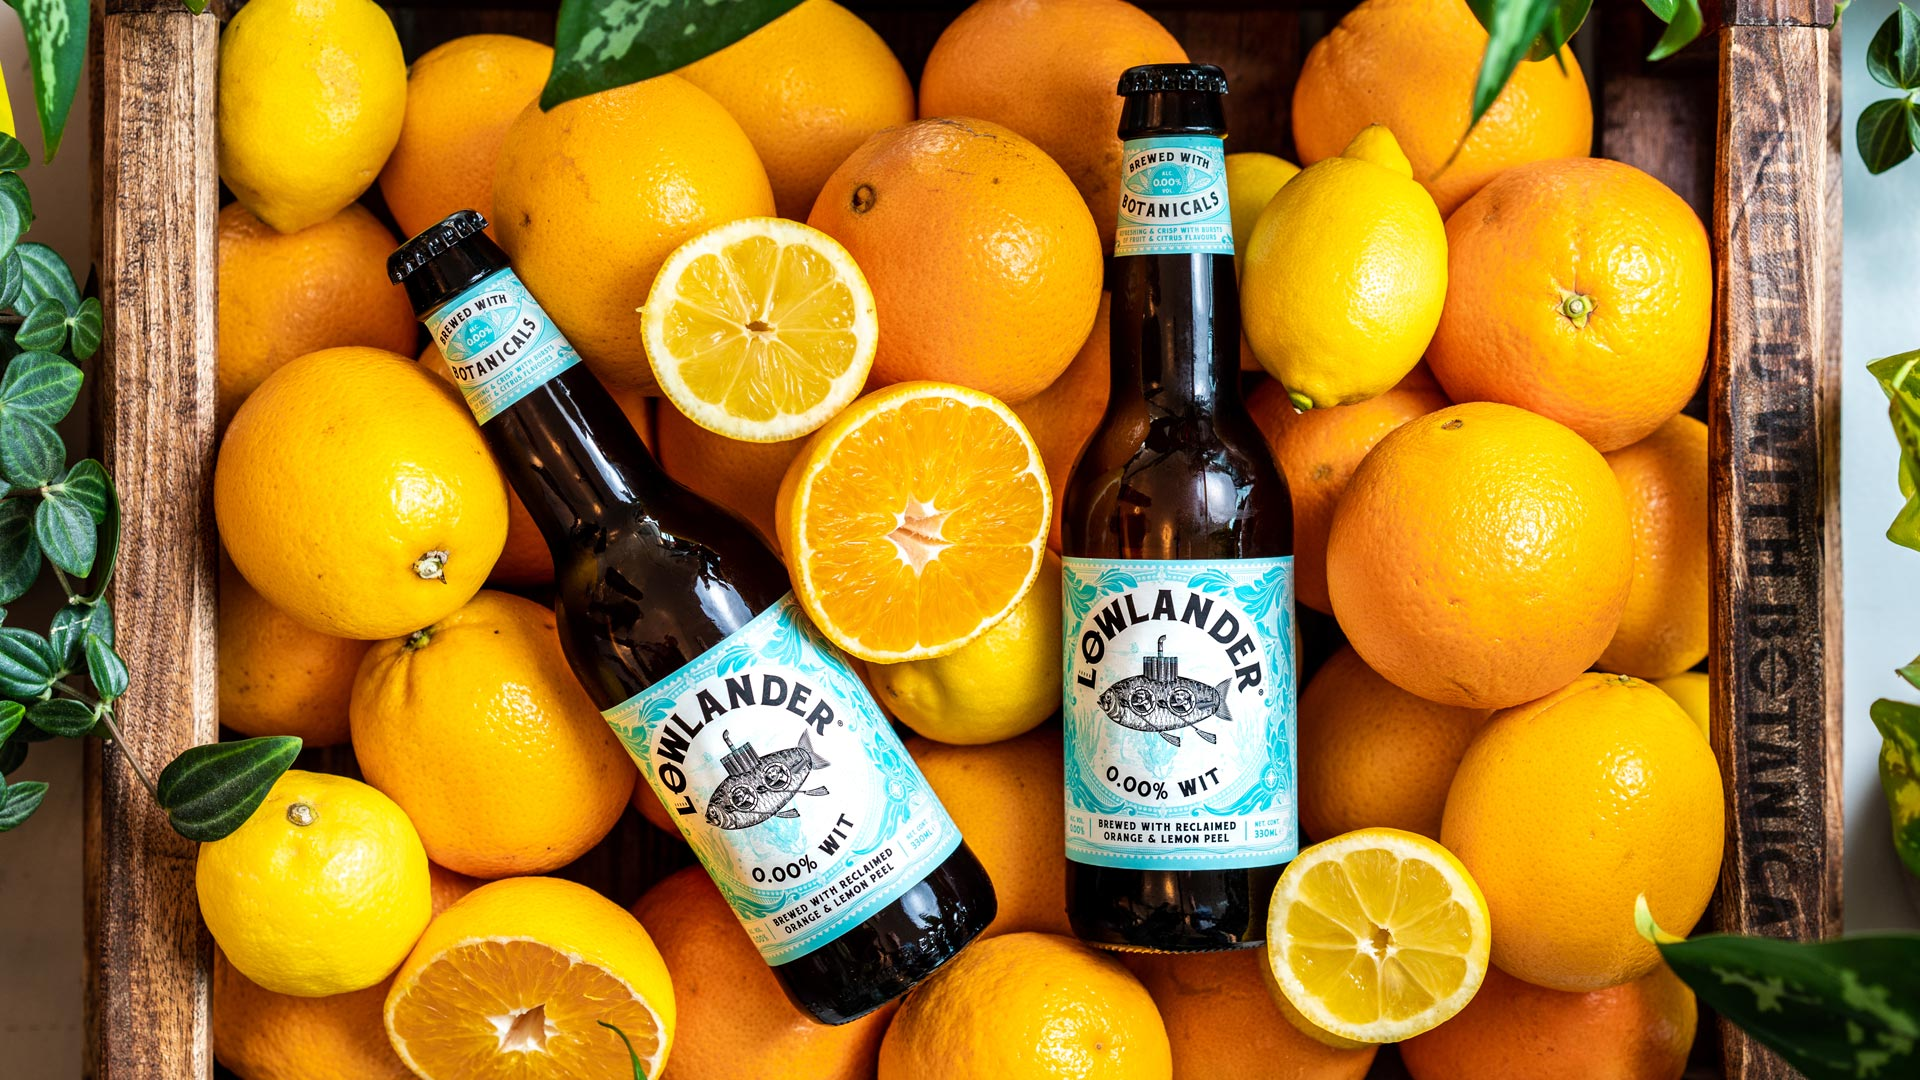 Lowlander Botanical Beer 0.00% WIT brewed with reclaimed orange and lemon, for an environmentally conscious alcohol free beer, which tells the story of Drebble the Dutch inventor of the first submarine in which he took King James for a ride down the River Thames in, Can design and illustrations created by Mutiny Agency.